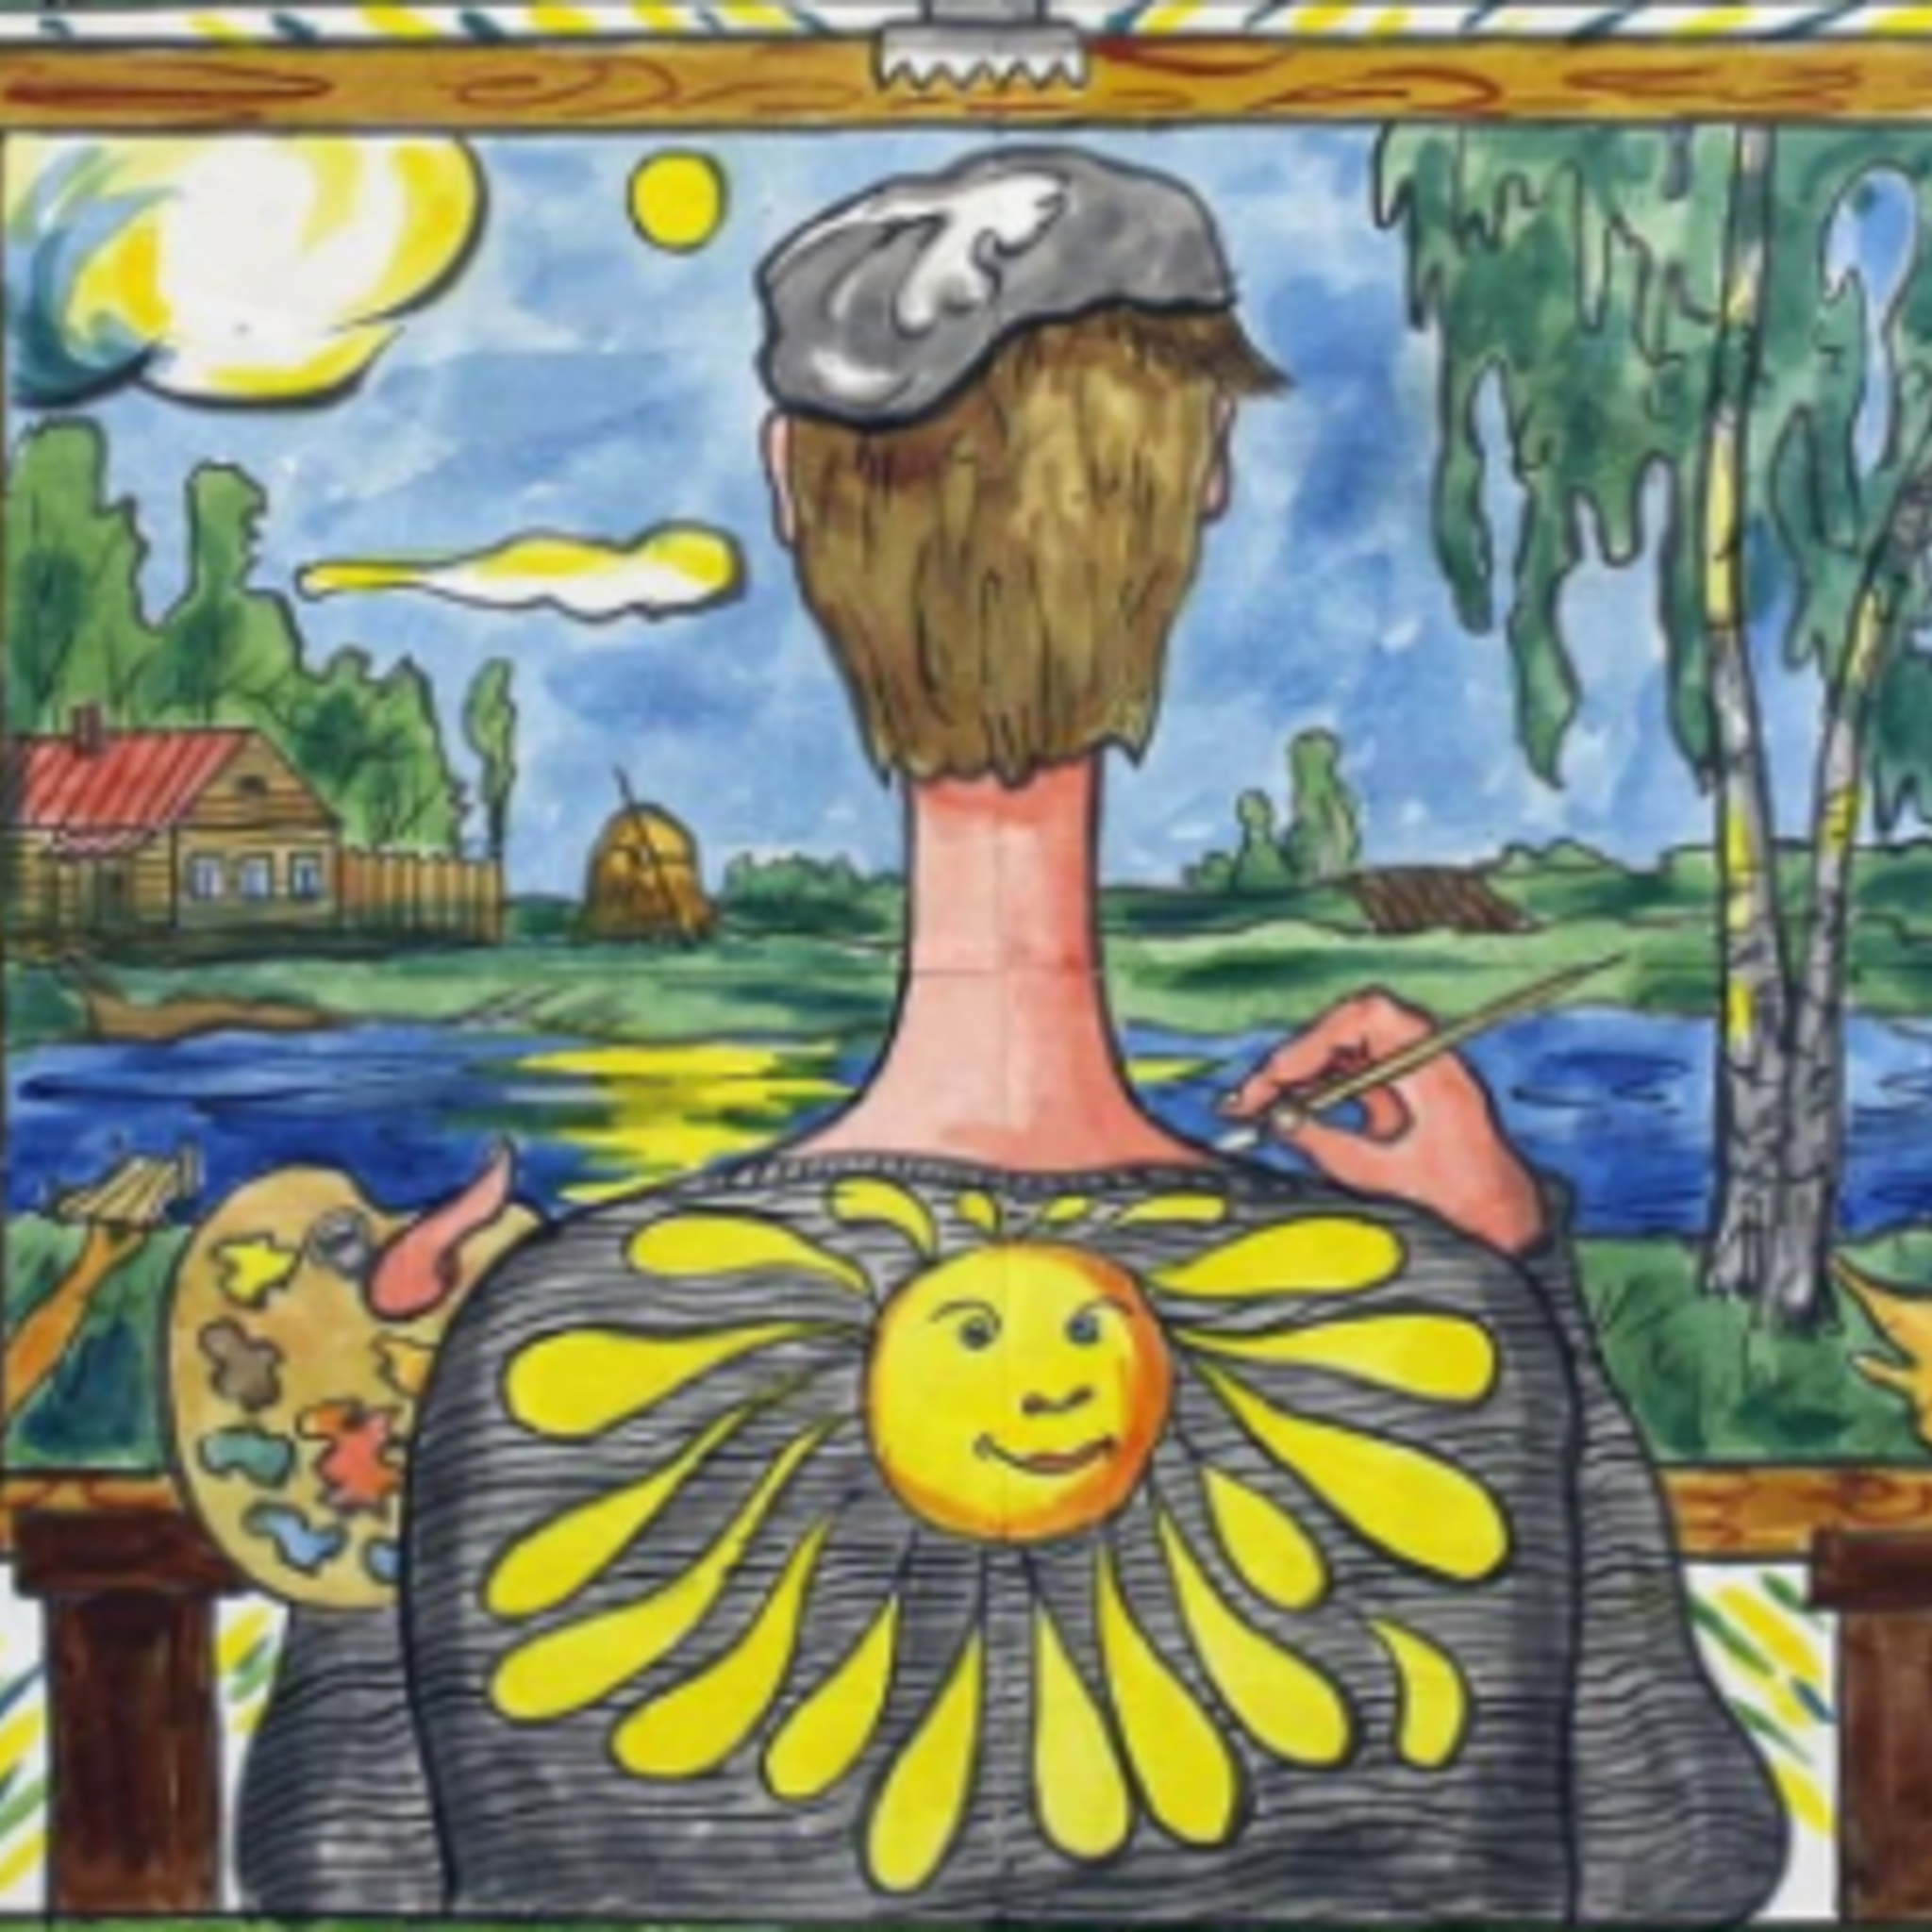 Exhibition of Outsider Art Youth is Spoiled